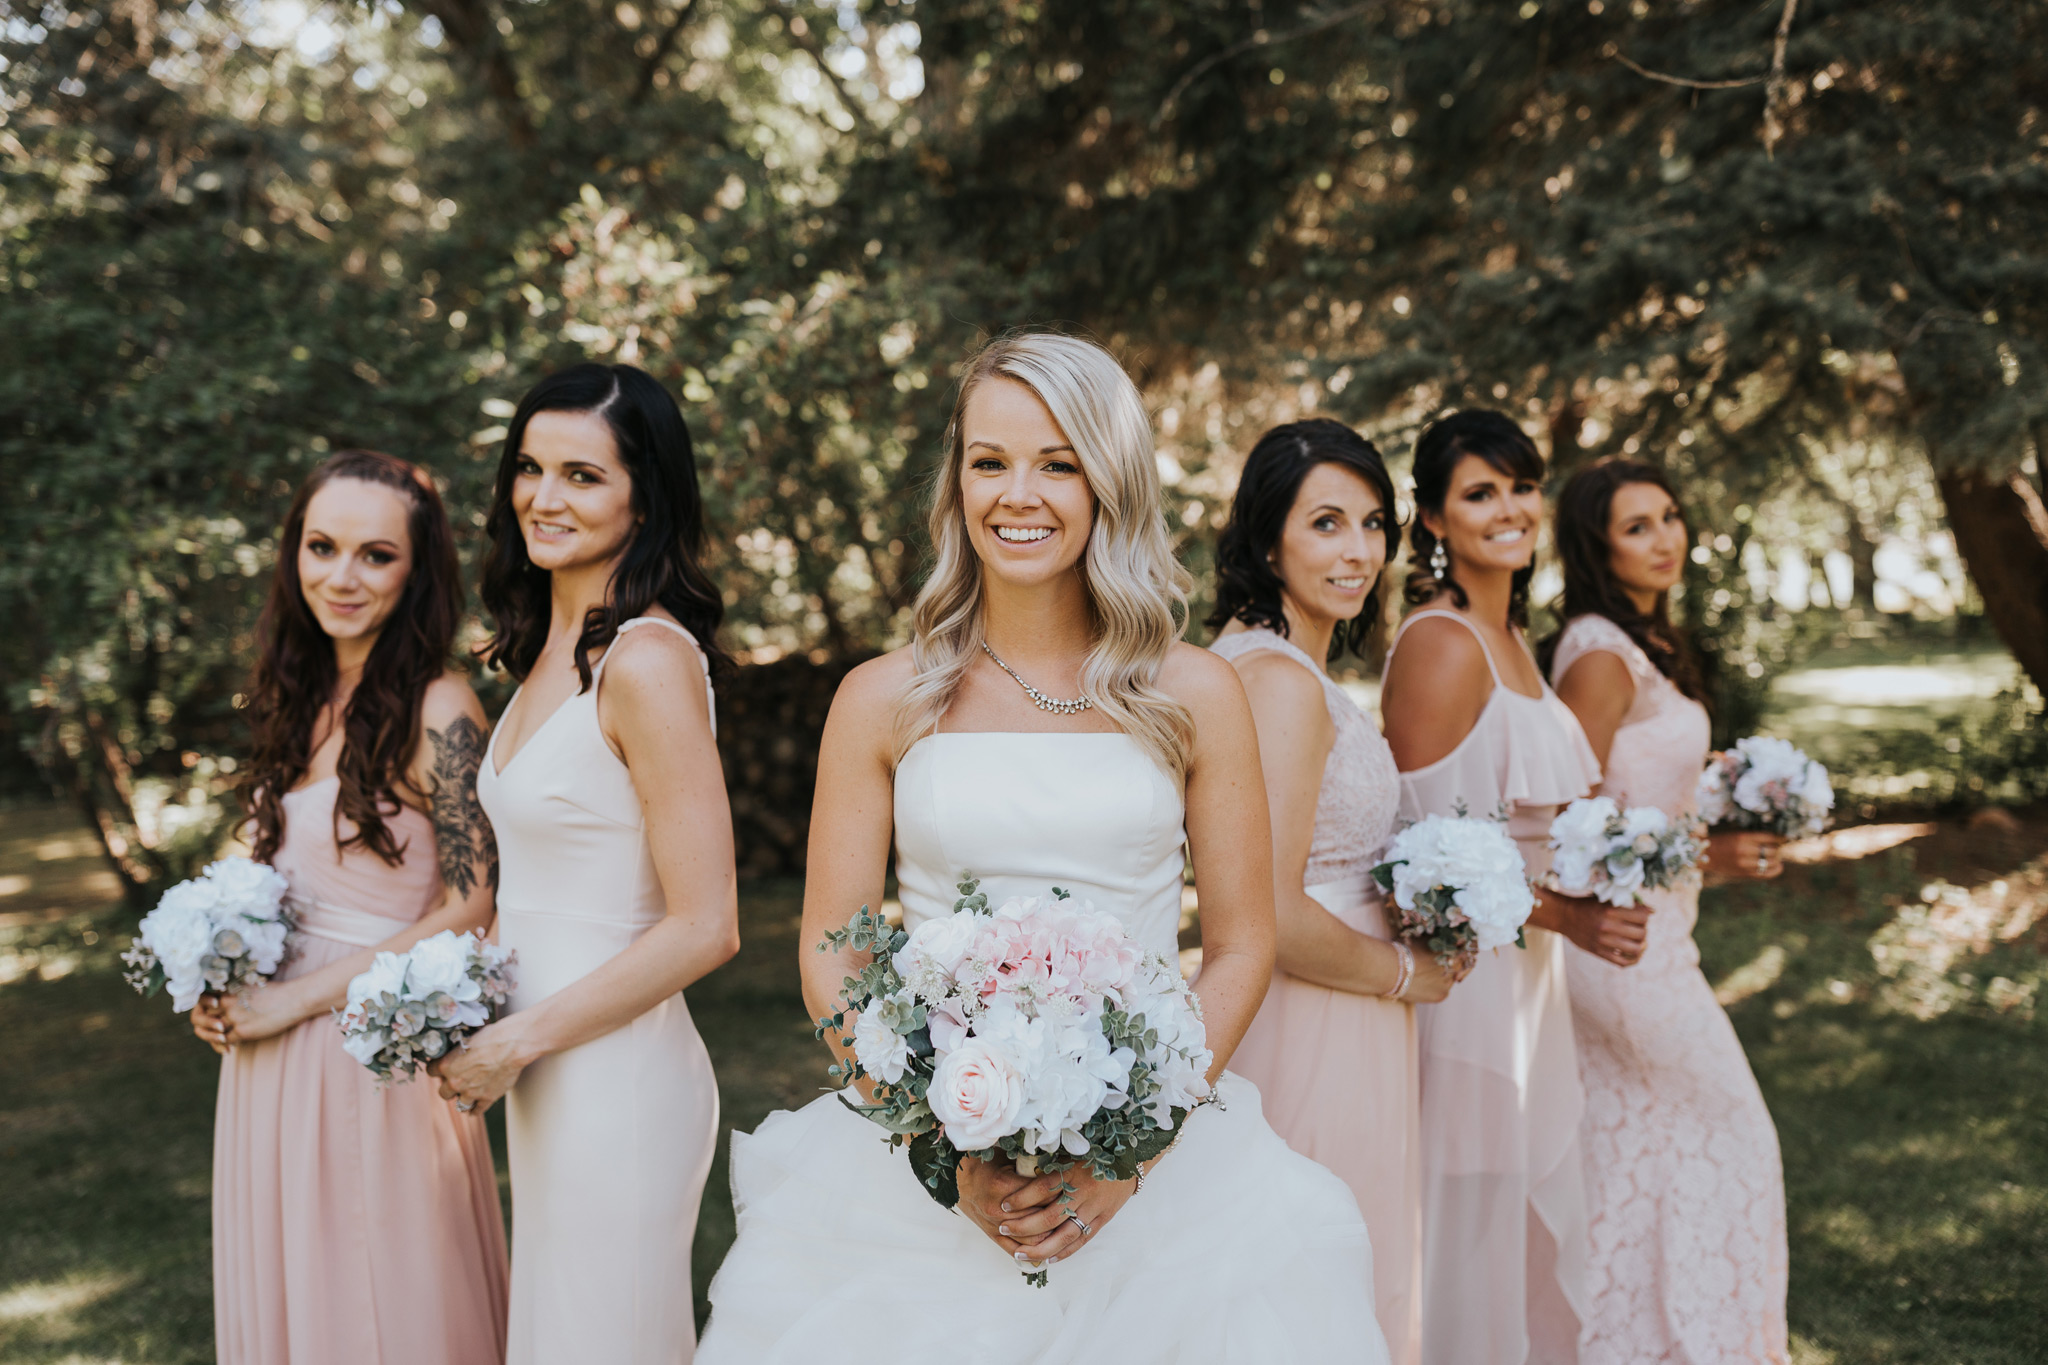 bride stands with bridesmaids behind her